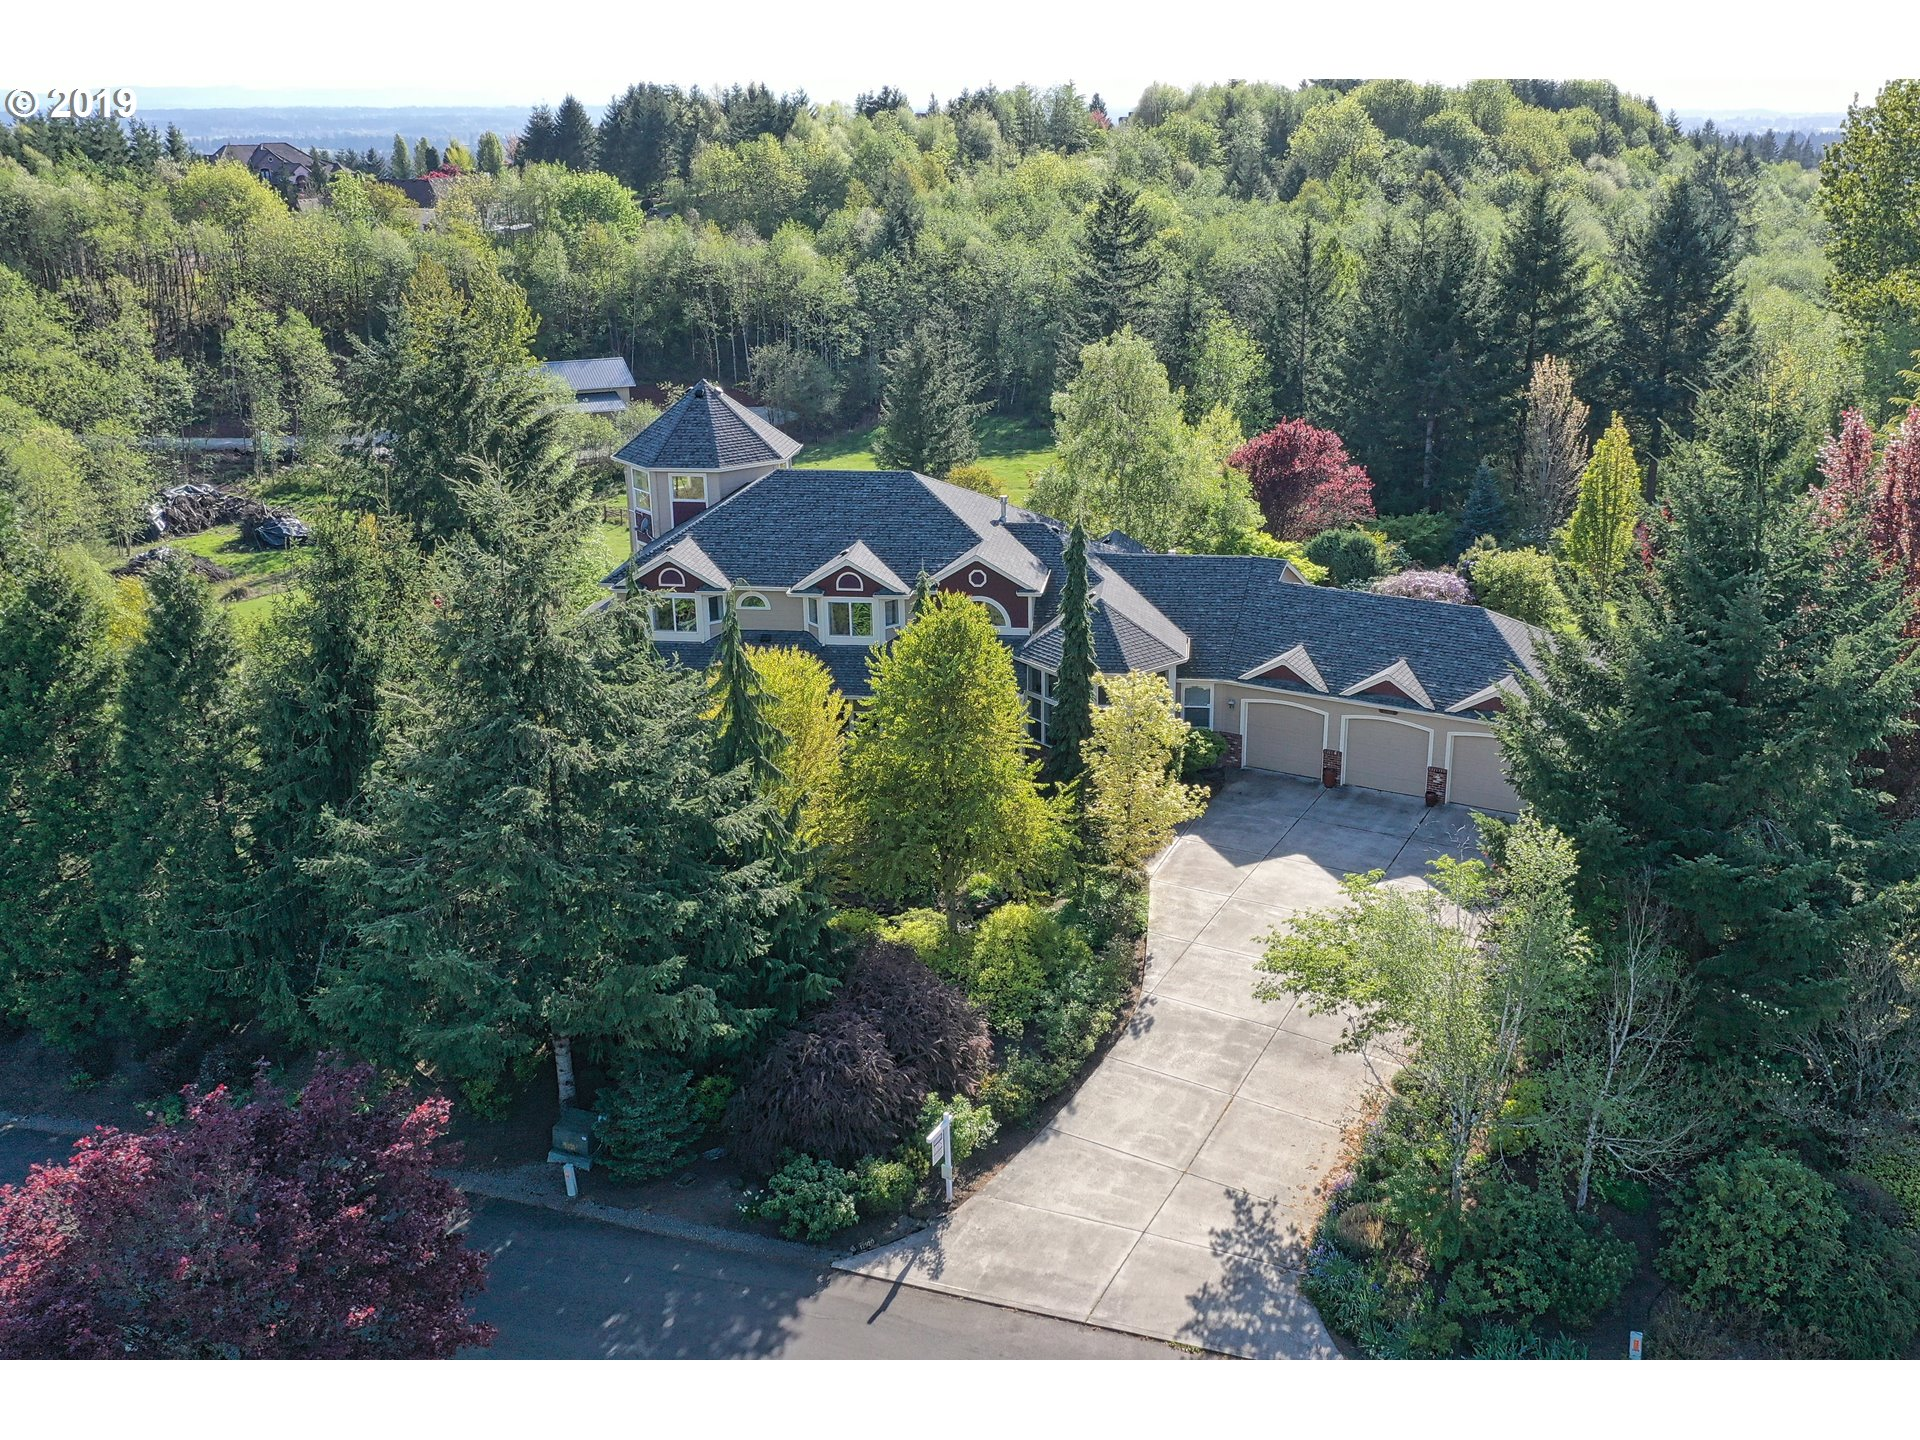 12920 NE 227th Ave, Brush Prairie, WA 98606